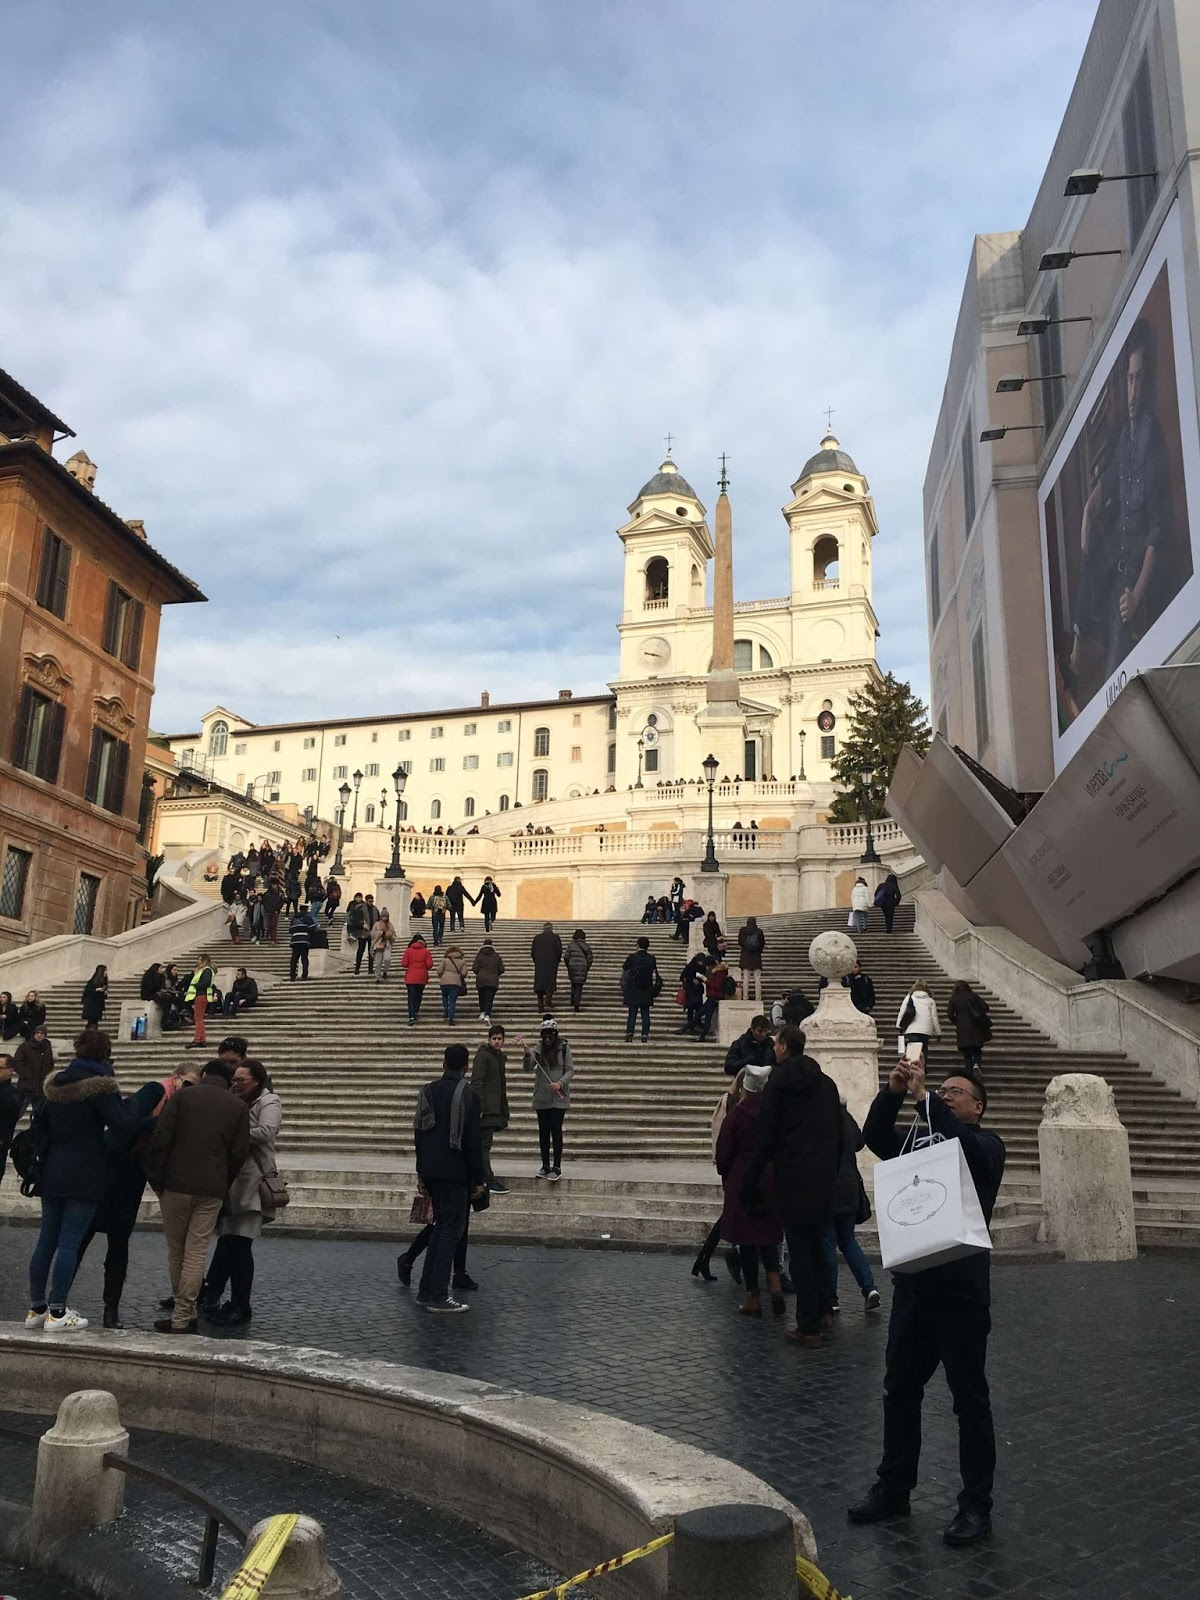 Guest Post: 10 must-sees in Rome - DollfaceBlogs